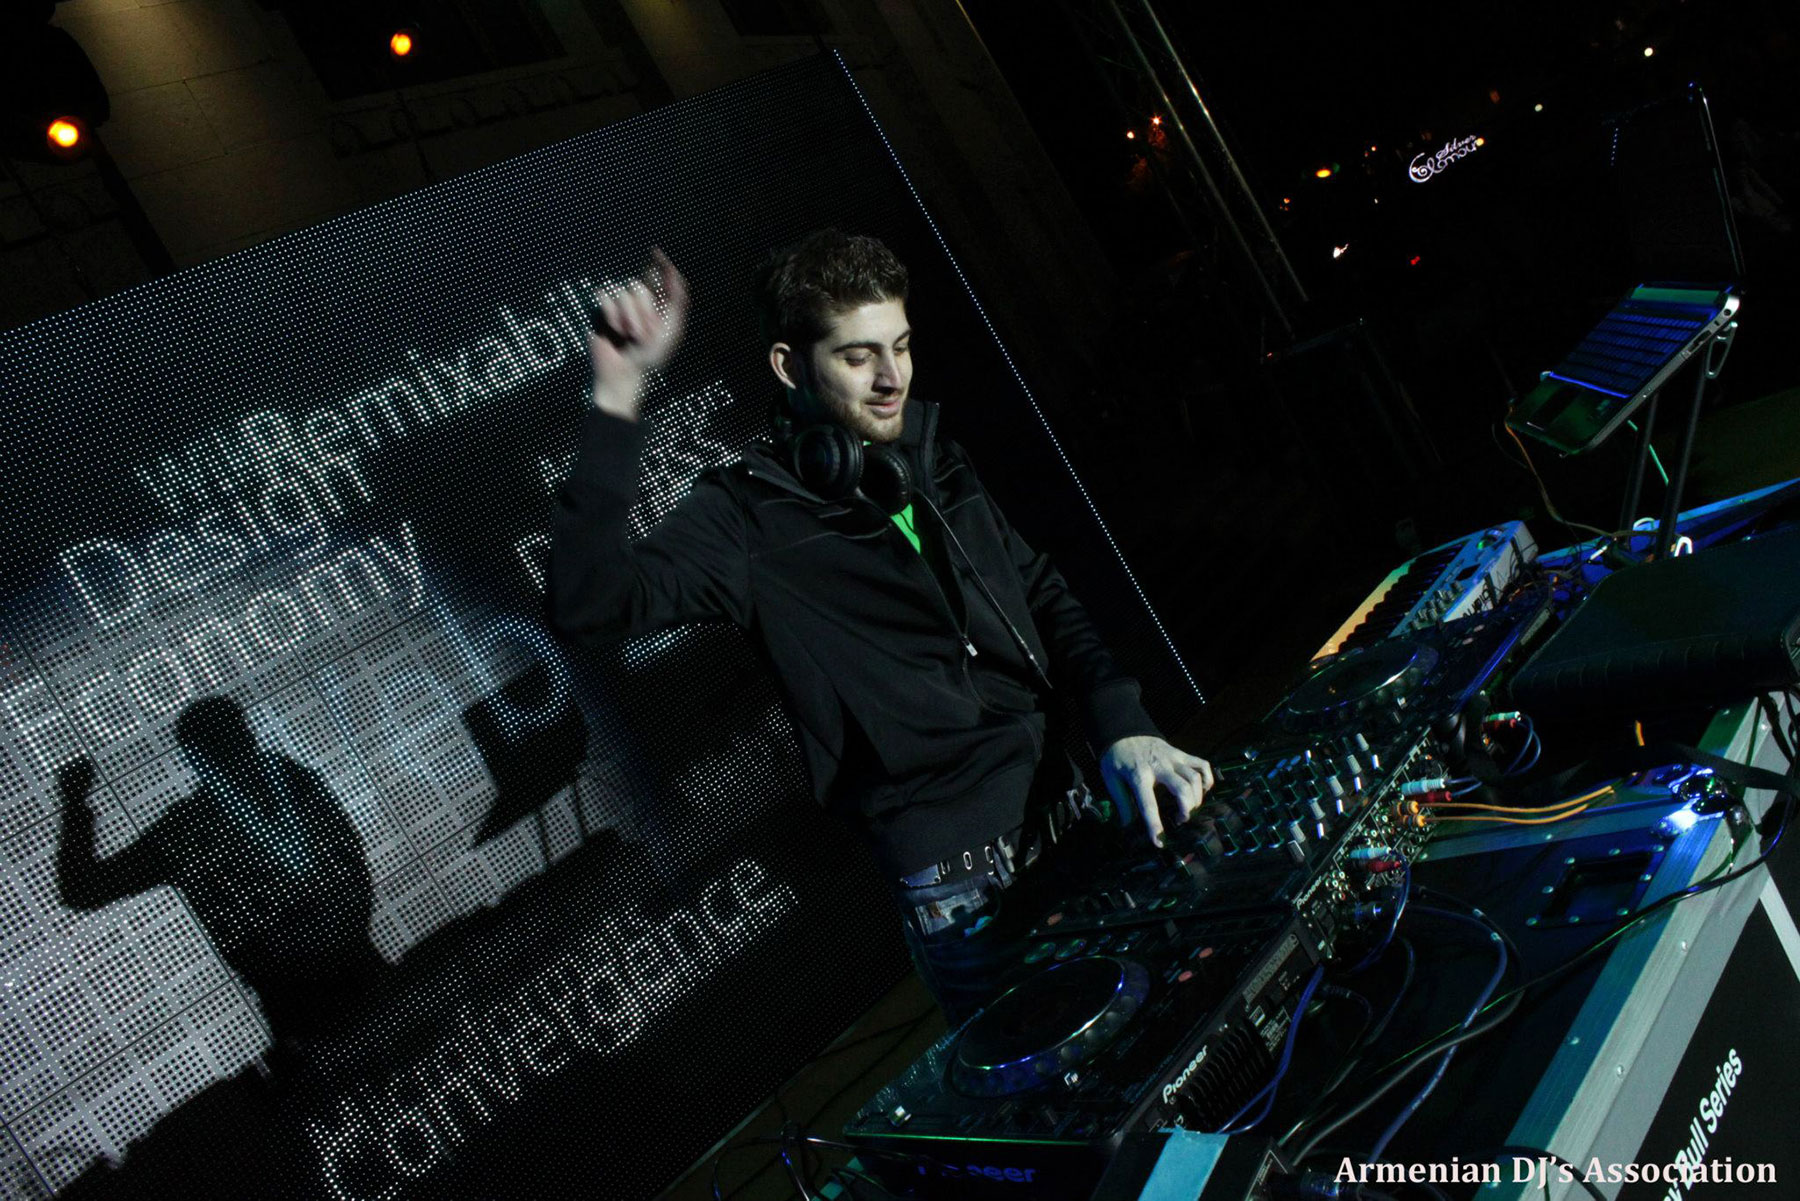 """""""My interests have moved farther away from DJ-ing as a hobby. However, it has helped me learn how to gauge the mood of the audience, analyze their feedback, explore new possibilities, and provide alternate choices."""" (Photo: crouge.com; Armenian DJ's Association)"""